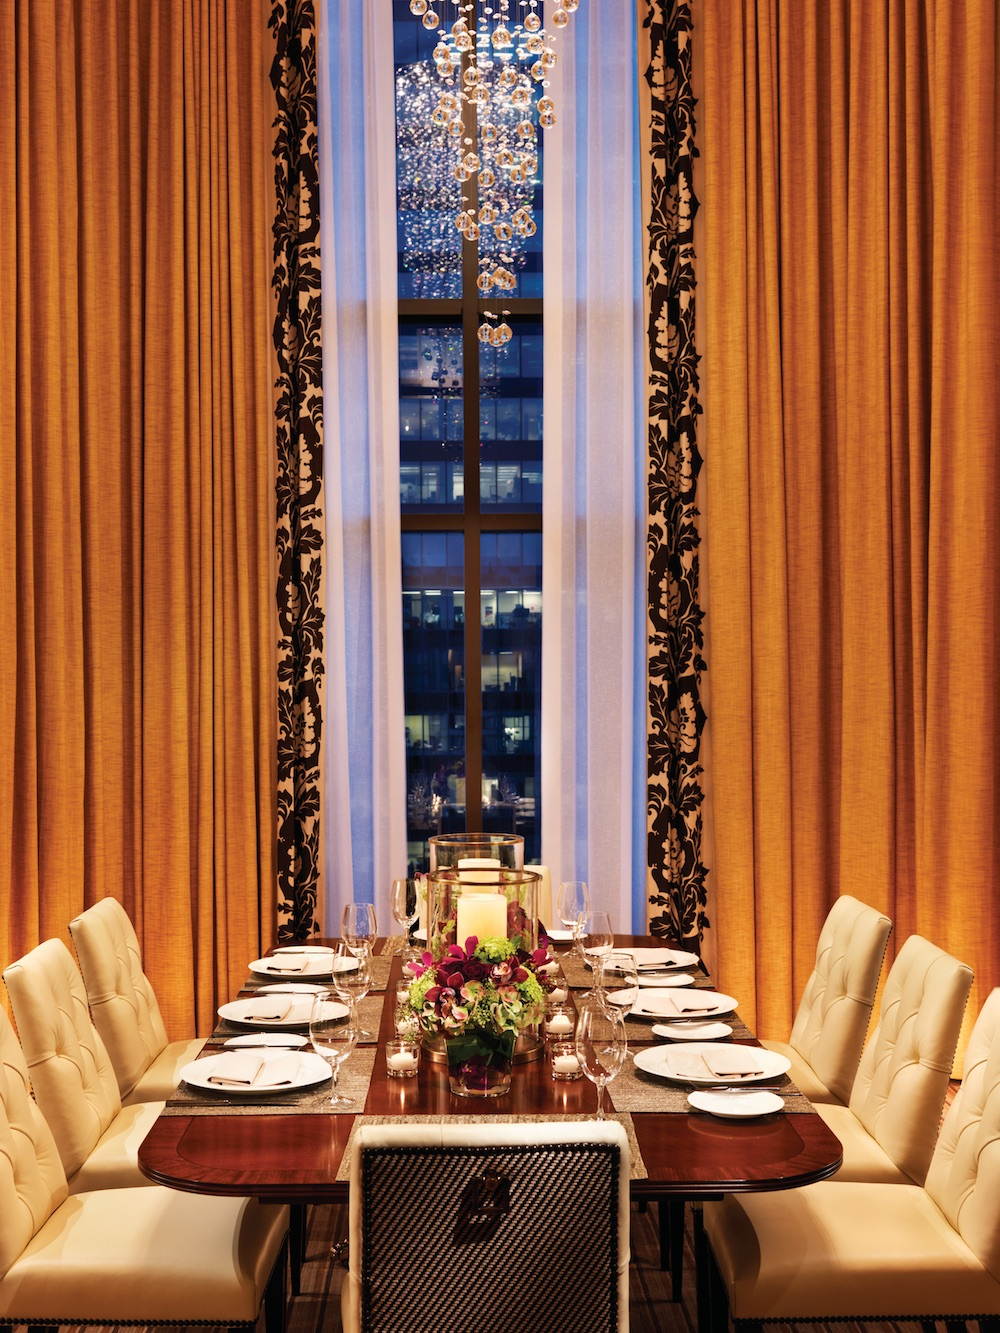 Dining Room of the Prime Minister Suite at the Four Seasons Vancouver